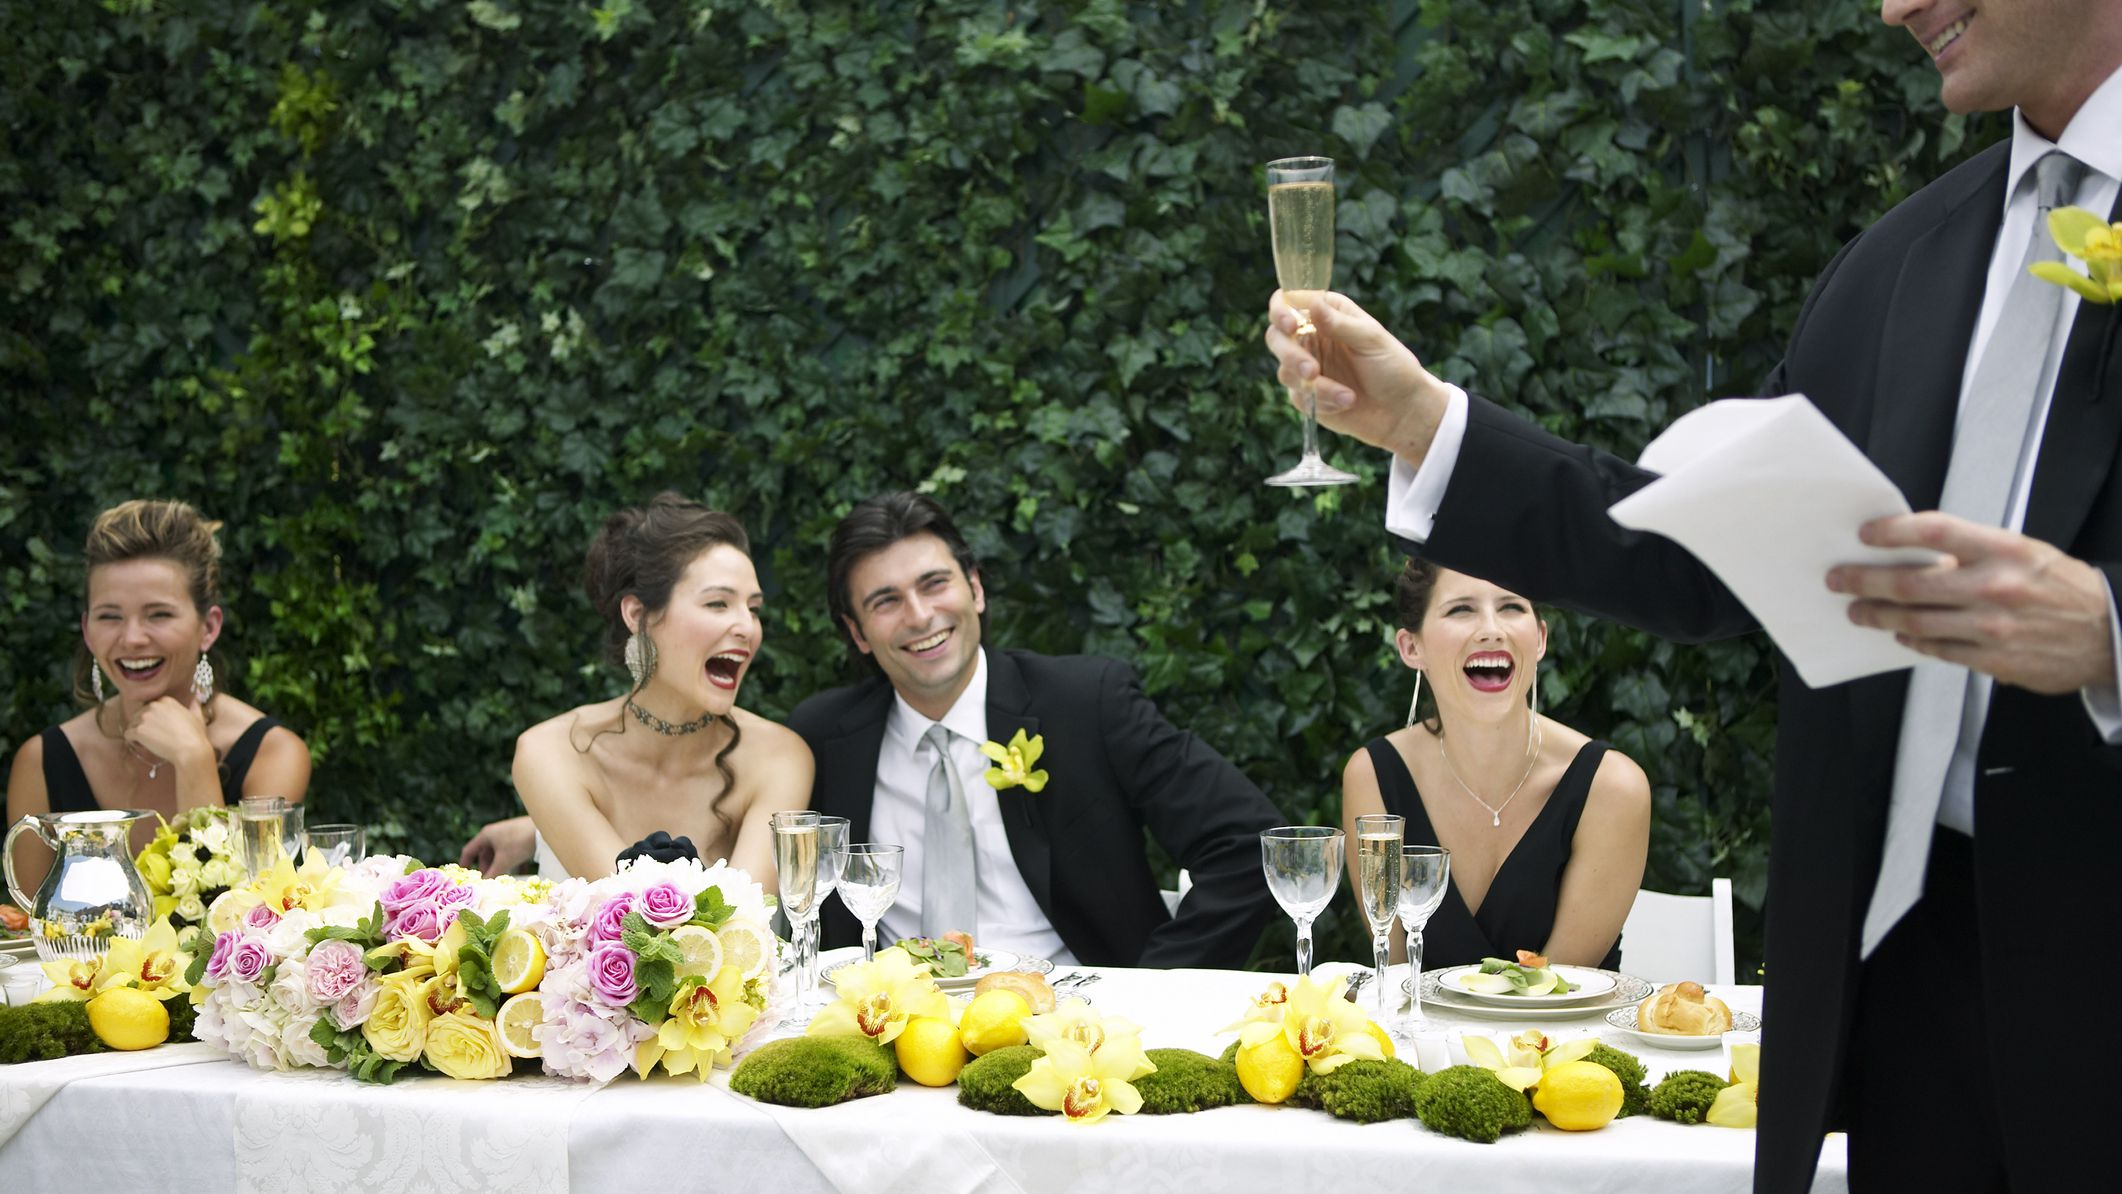 14 Quotes for a Funny Wedding Toast